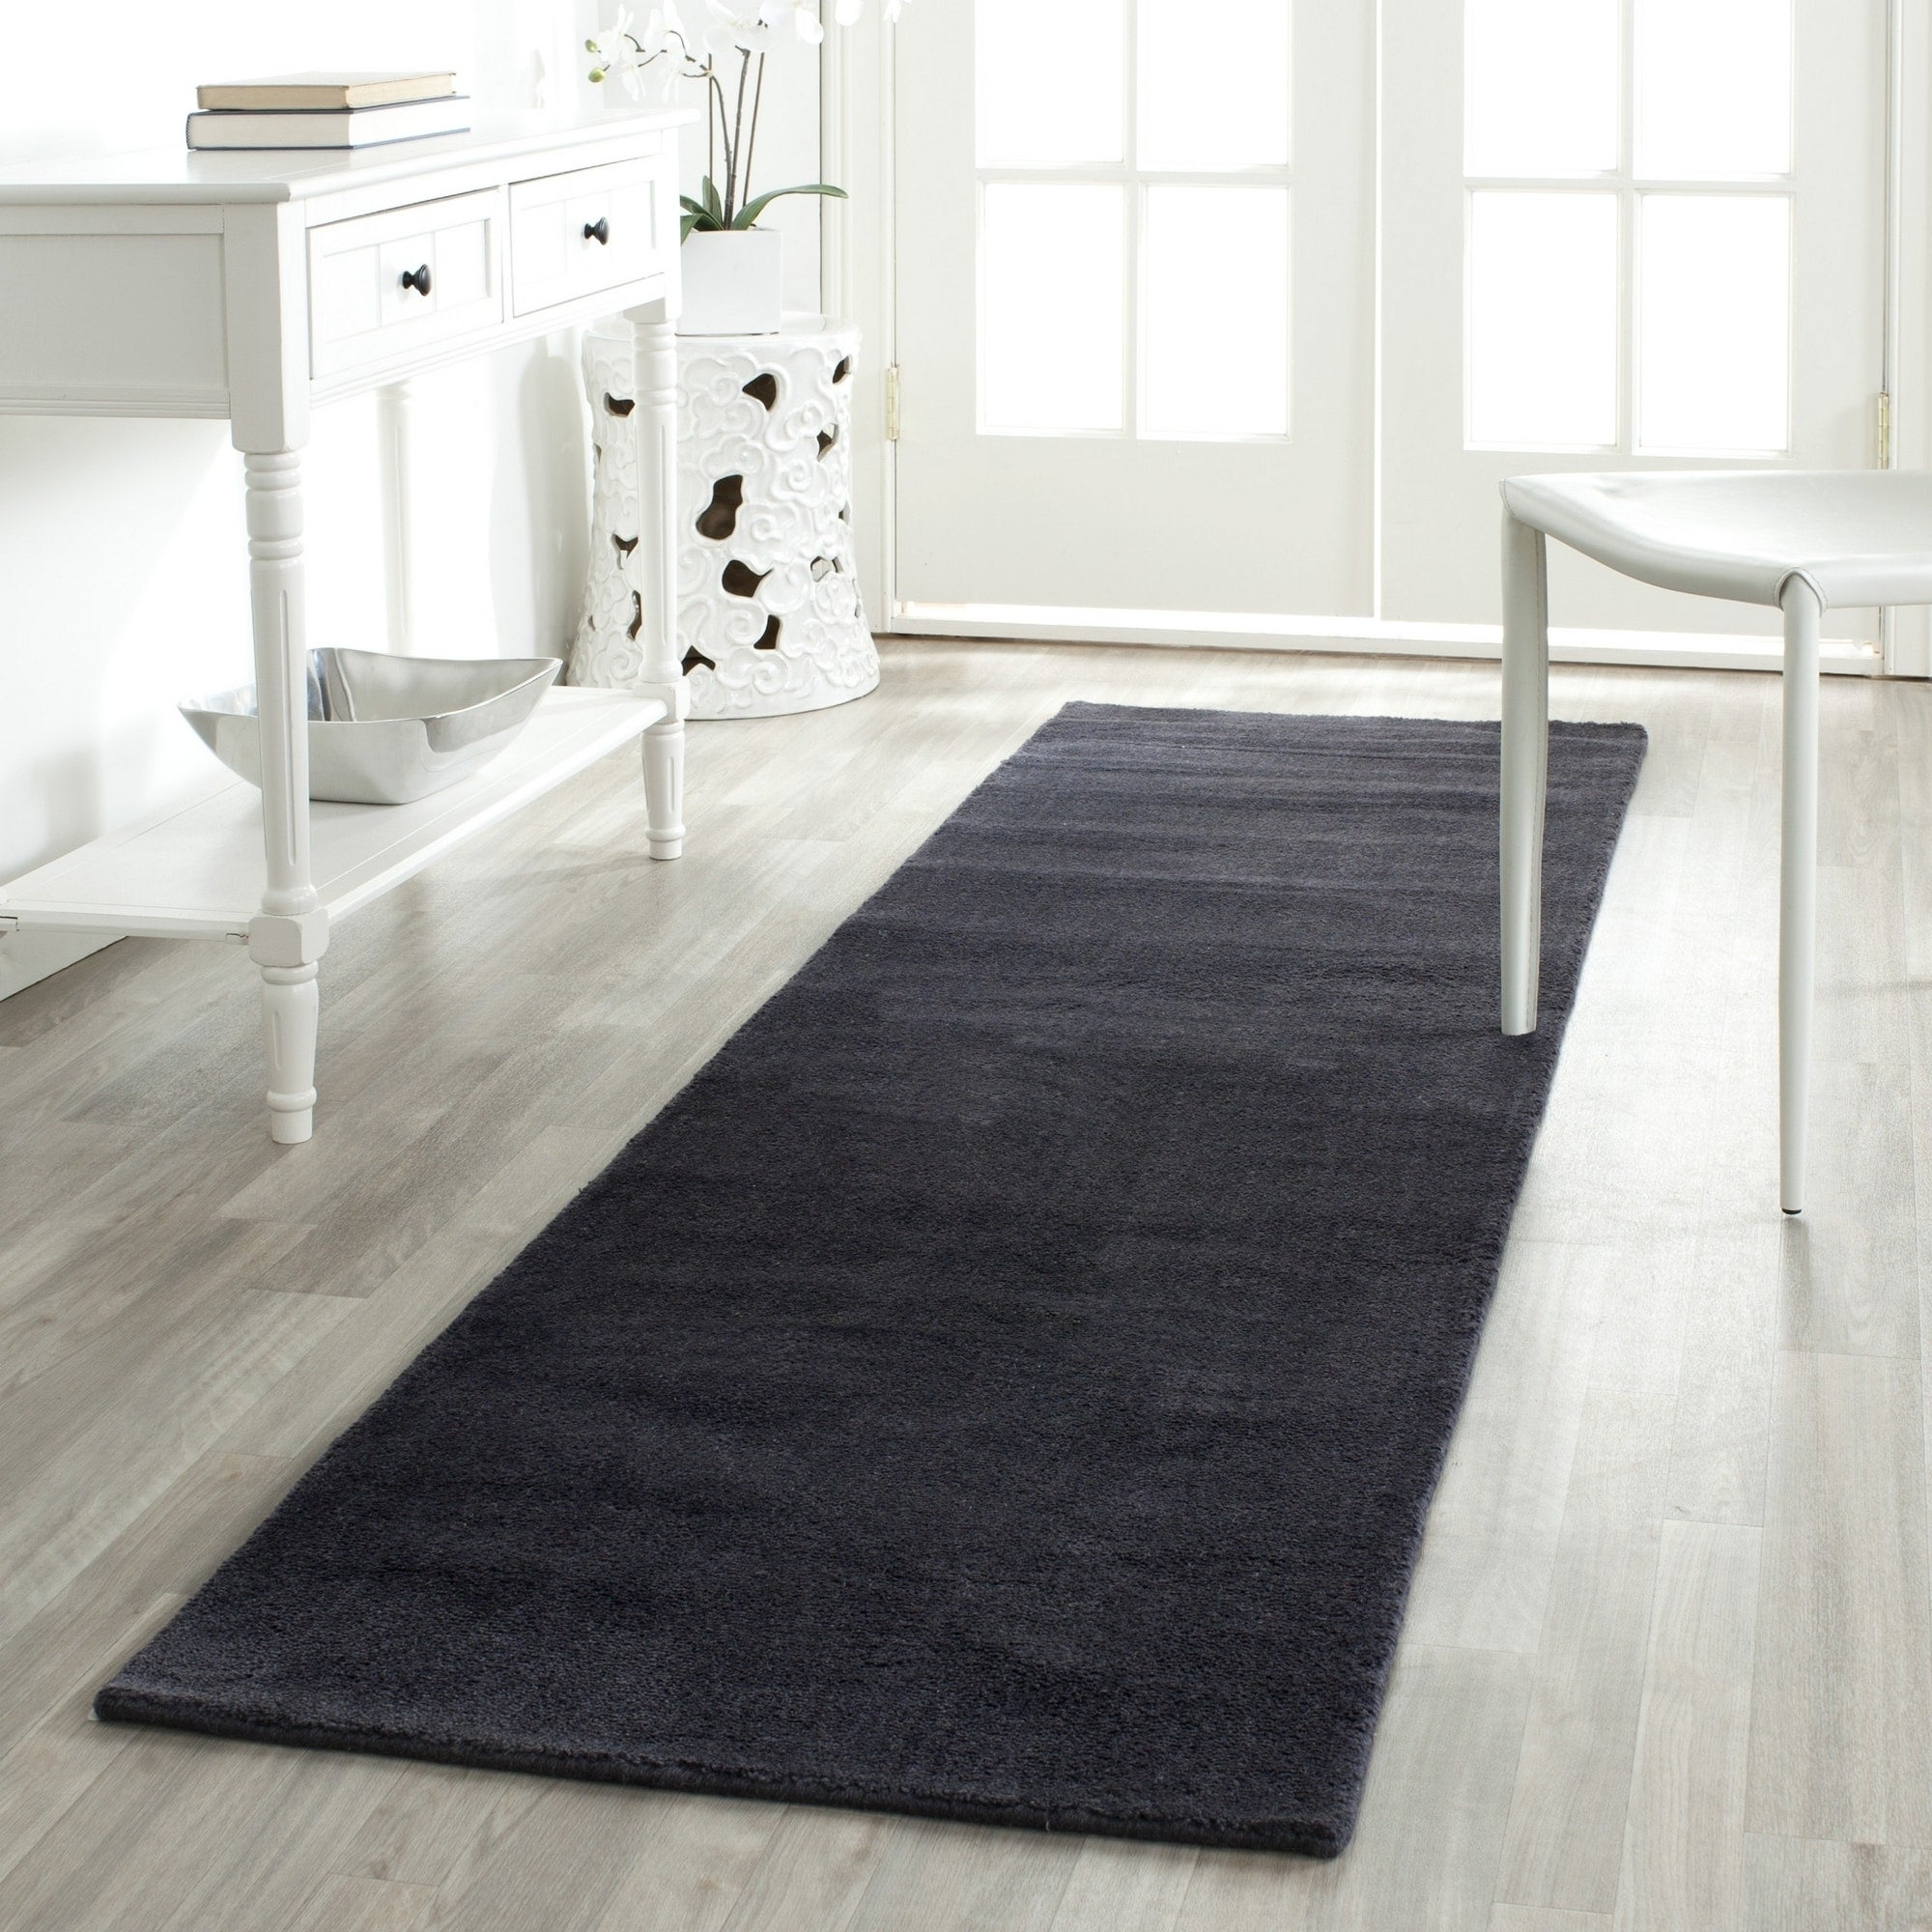 Safavieh Handmade Himalaya Solid Black Wool Rug 2 3 X 6 On Free Shipping Today 8059141